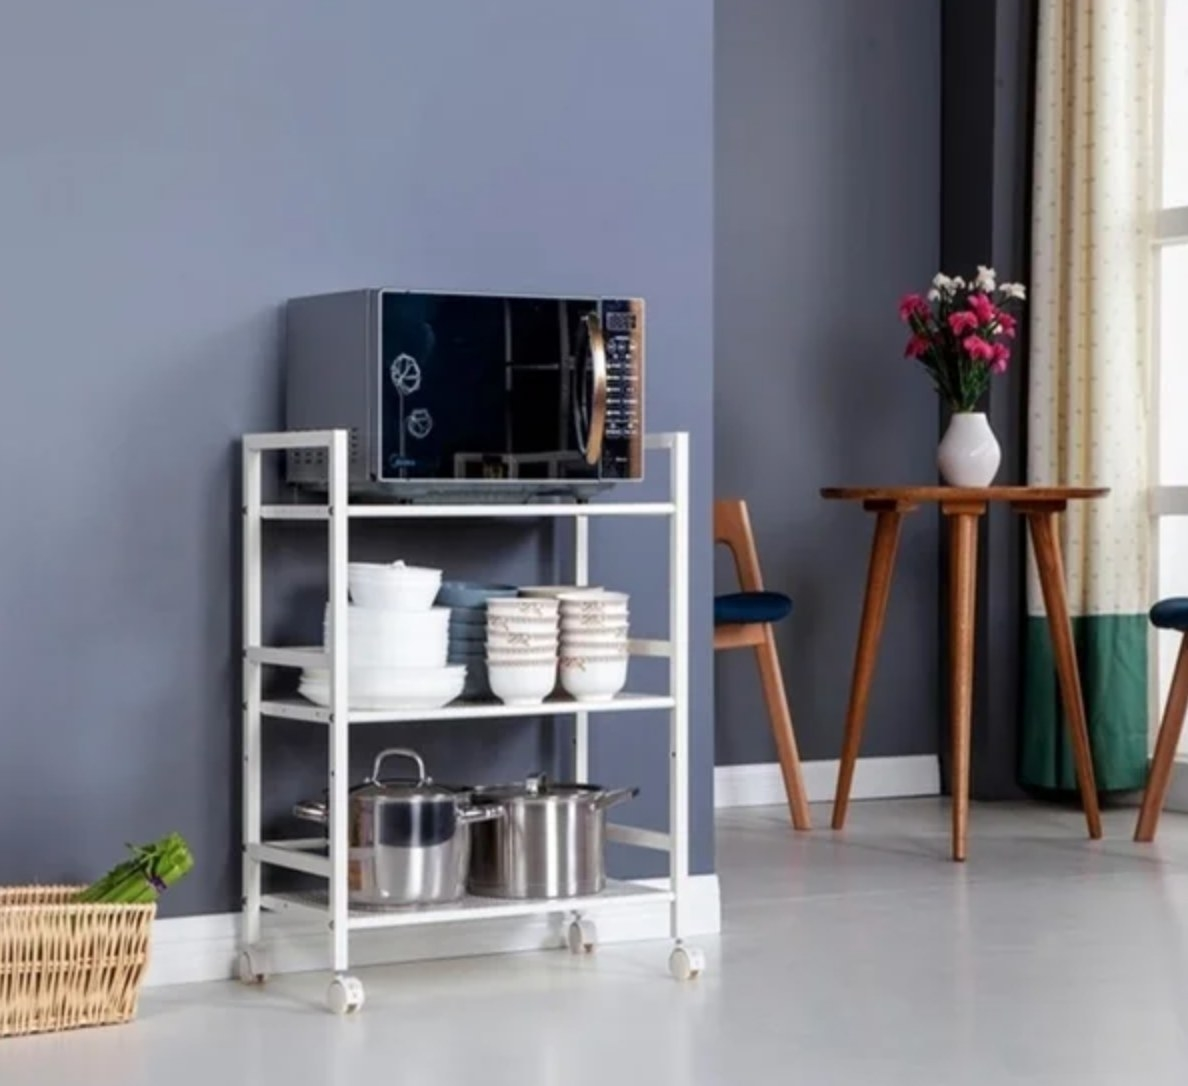 The three-tier utility rolling cart in white